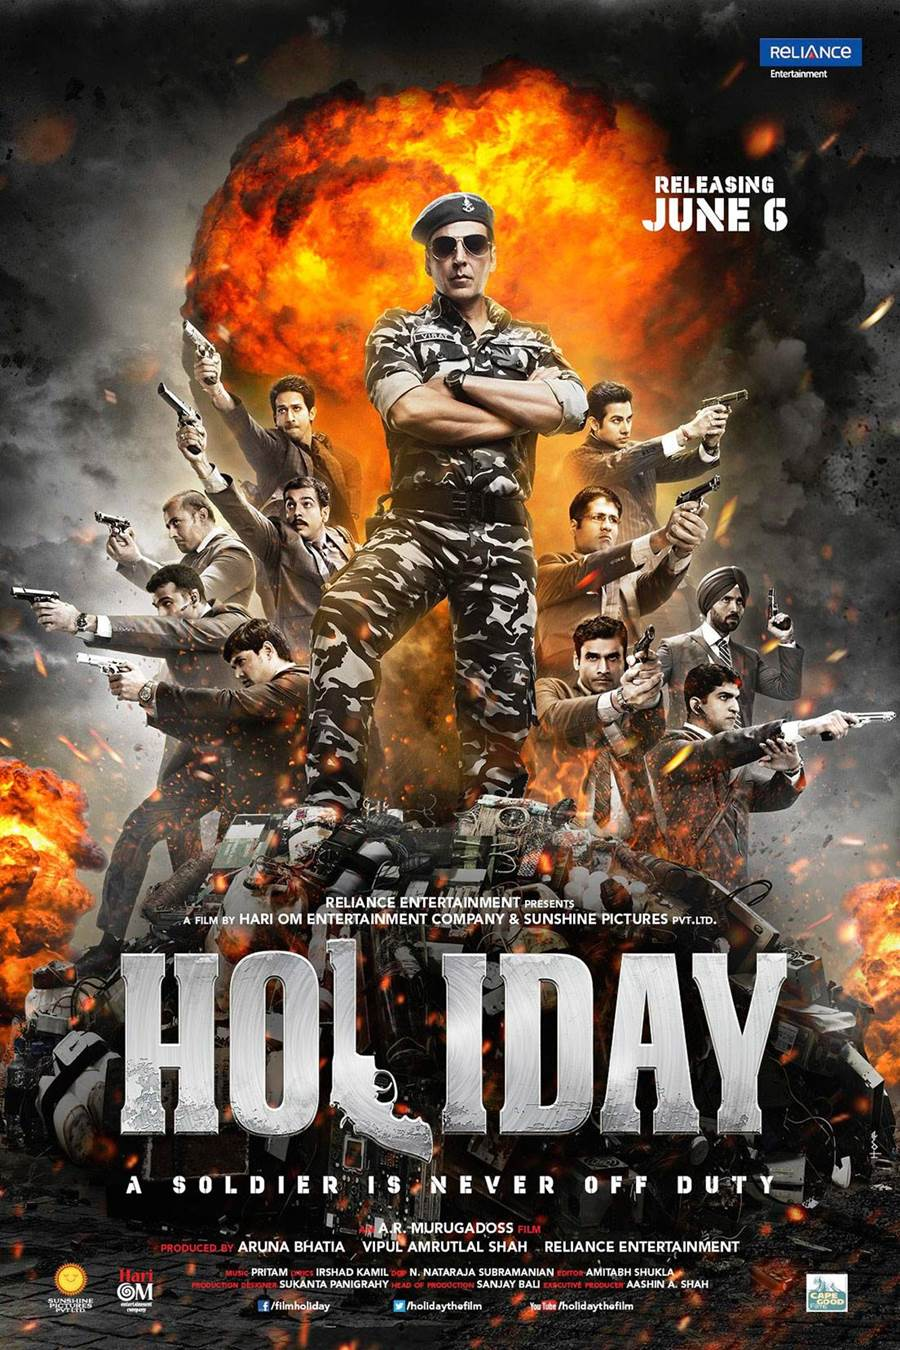 Holiday Movie Poster HD Akshay Kumar